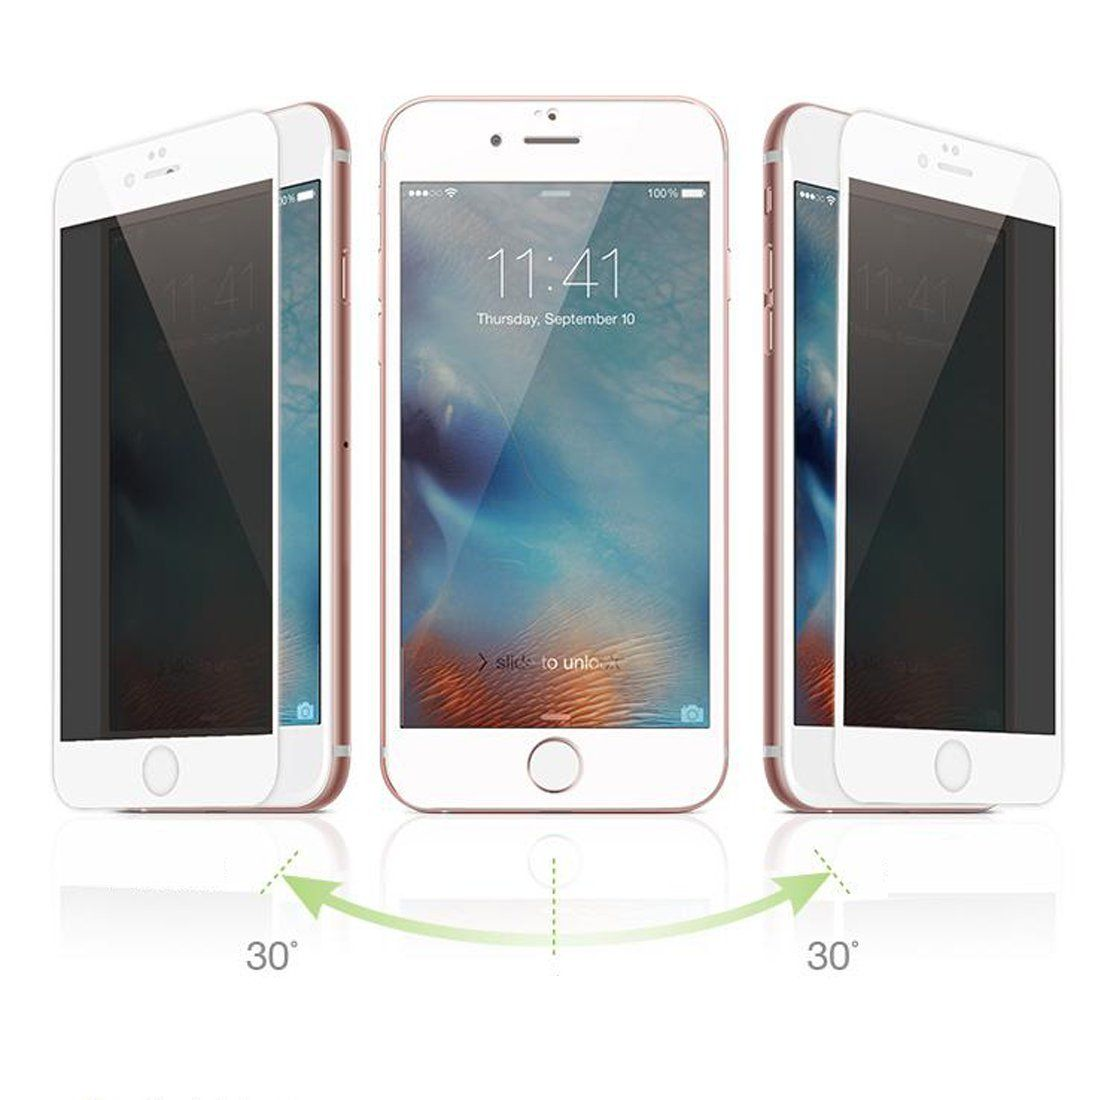 Screen Protector and Anti-Bubble Film IQ Shield Matte Full Body Skin Compatible with Apple iPhone 6s + Anti-Glare iPhone 6 4.7 inch Updated Version Full Coverage